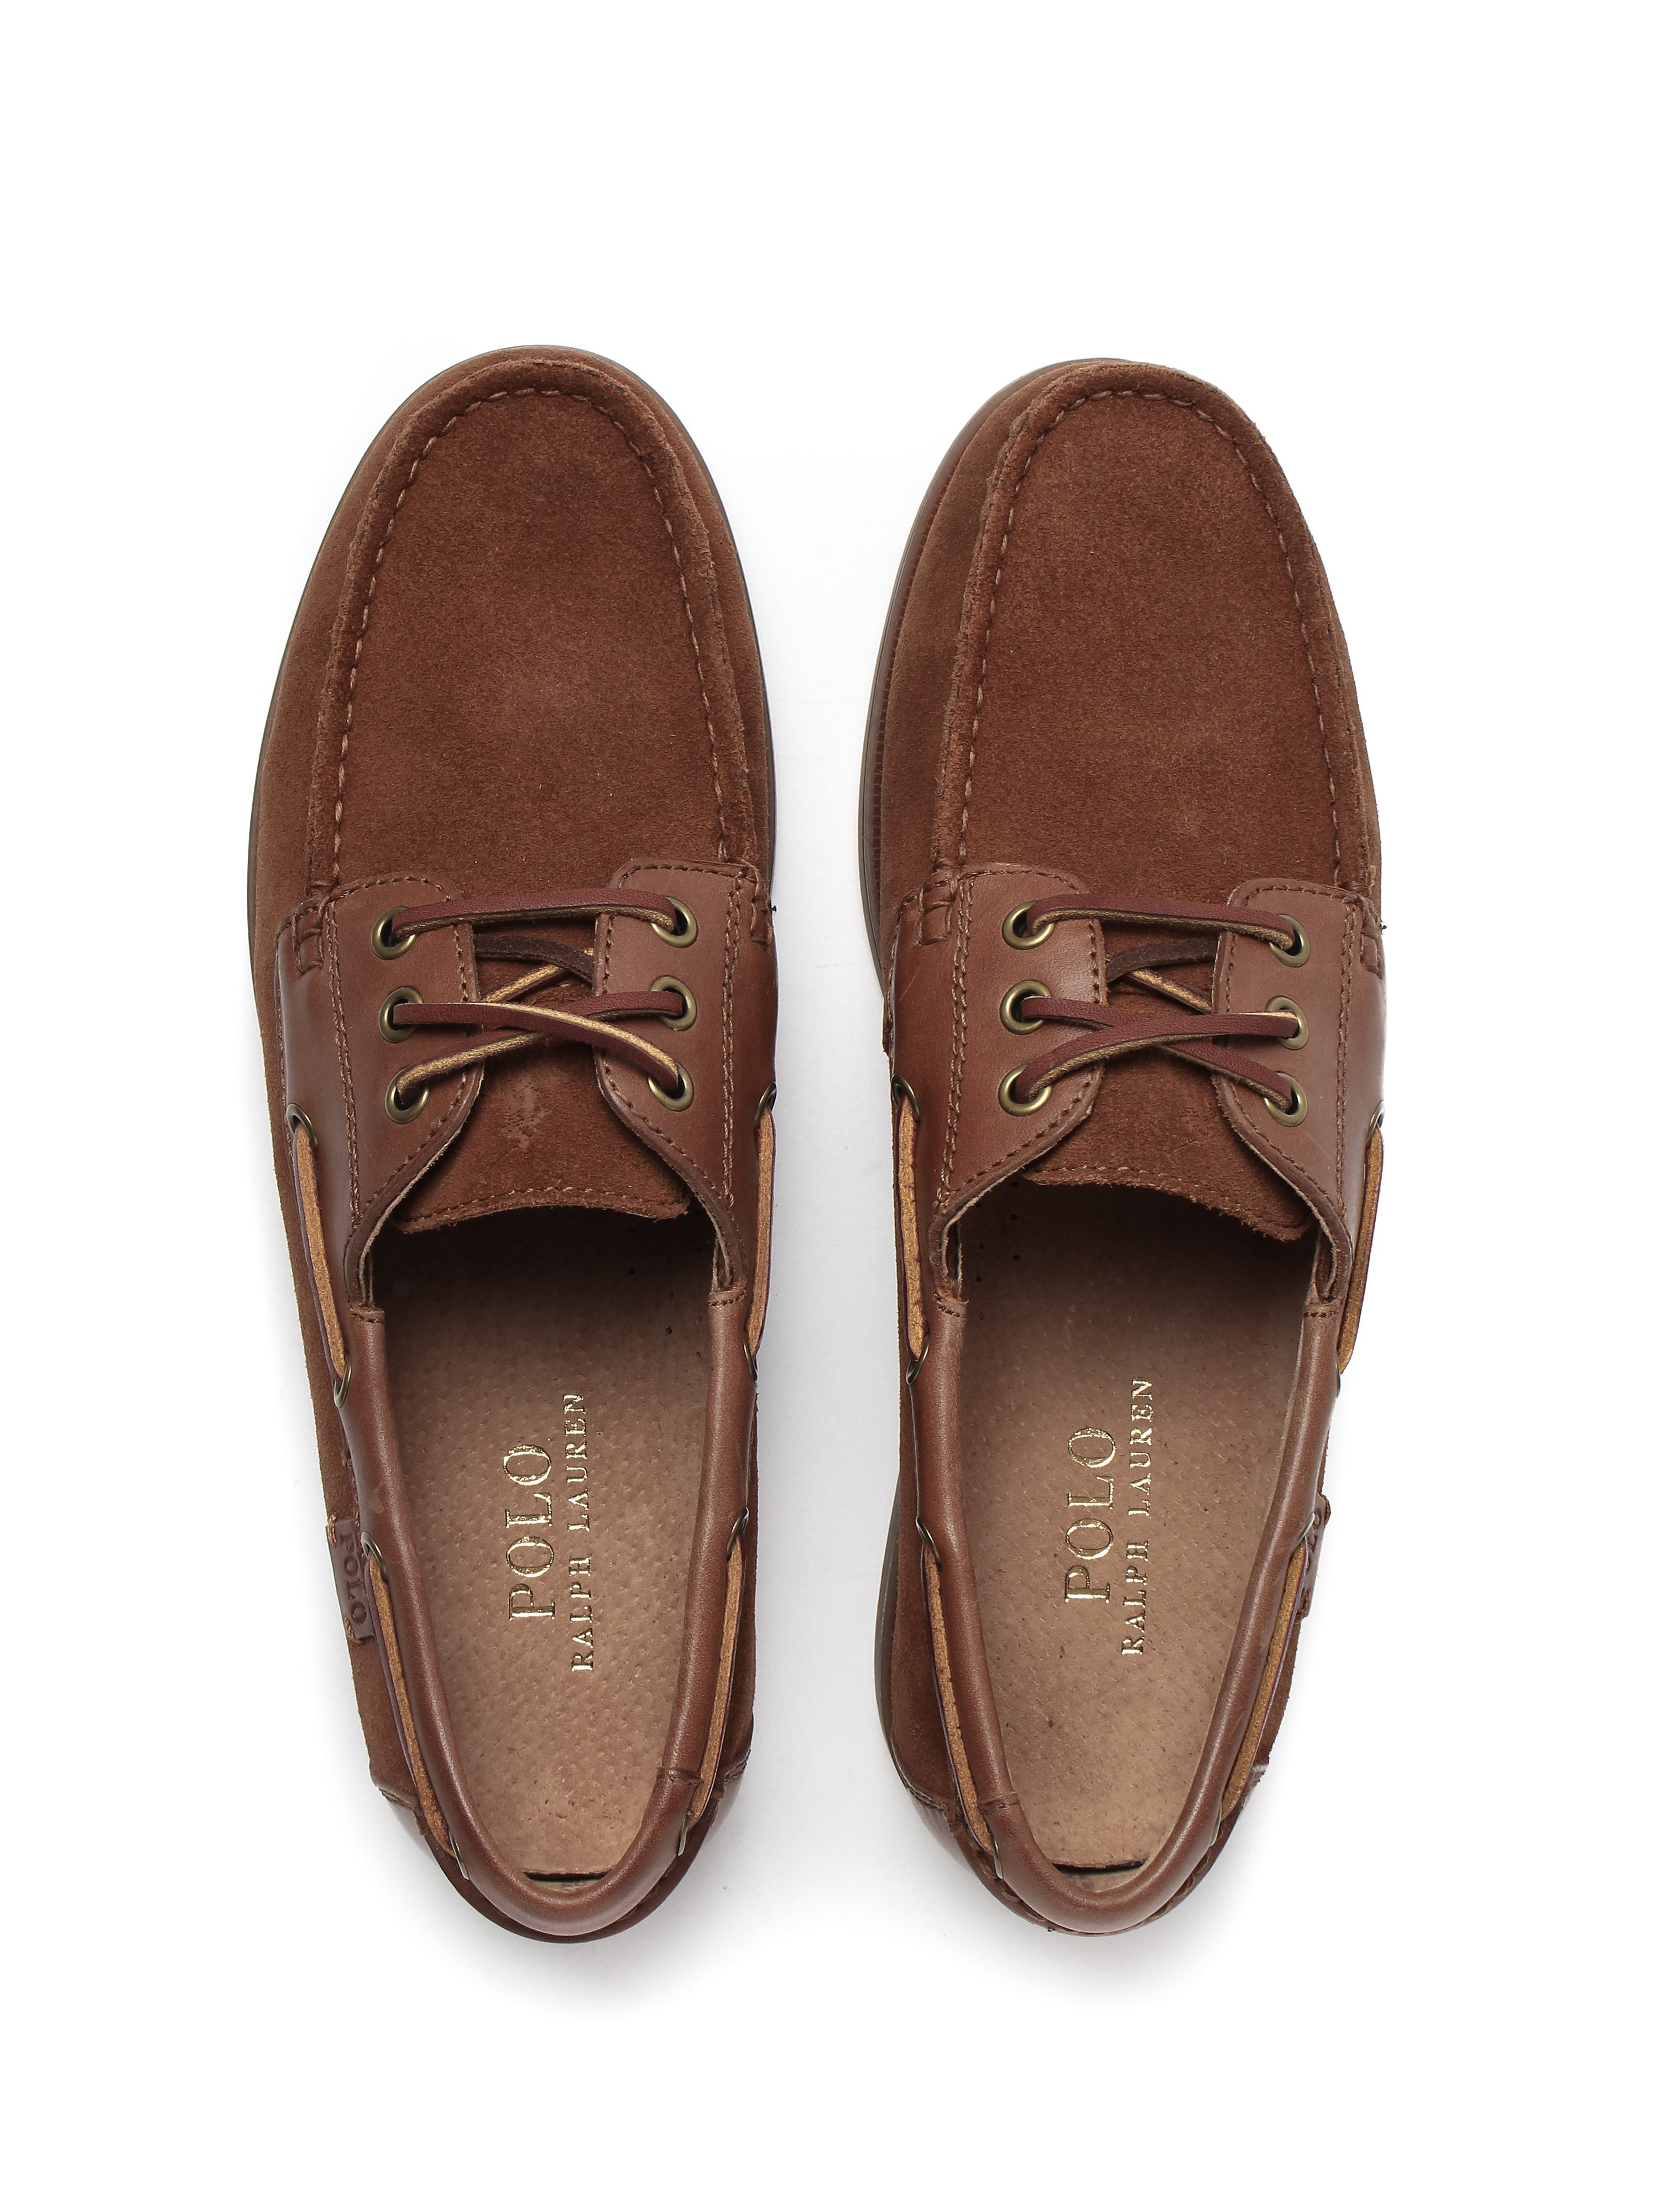 Polo Ralph Lauren Mens Bienne II Shoe - Polo Tan